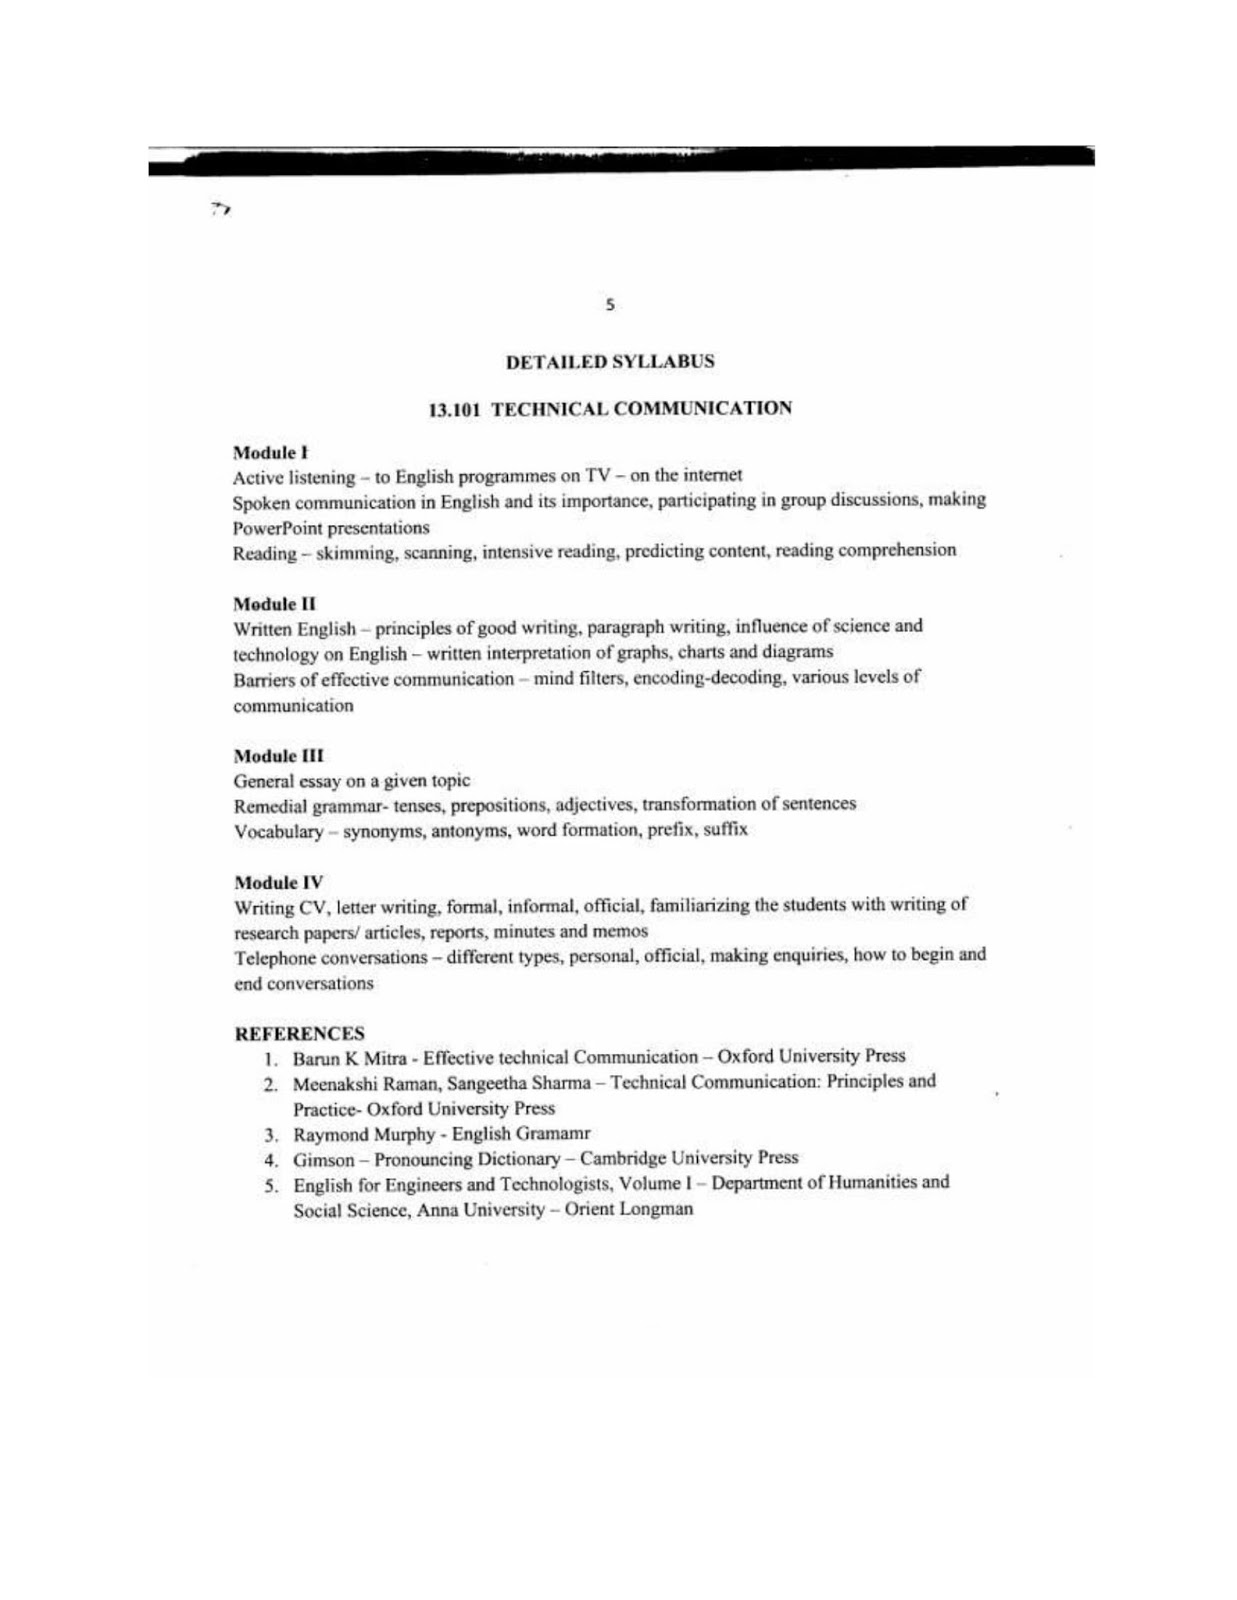 Ppt On Technical Topics Related To Computer Science Reports  Computer Science Resume Examples